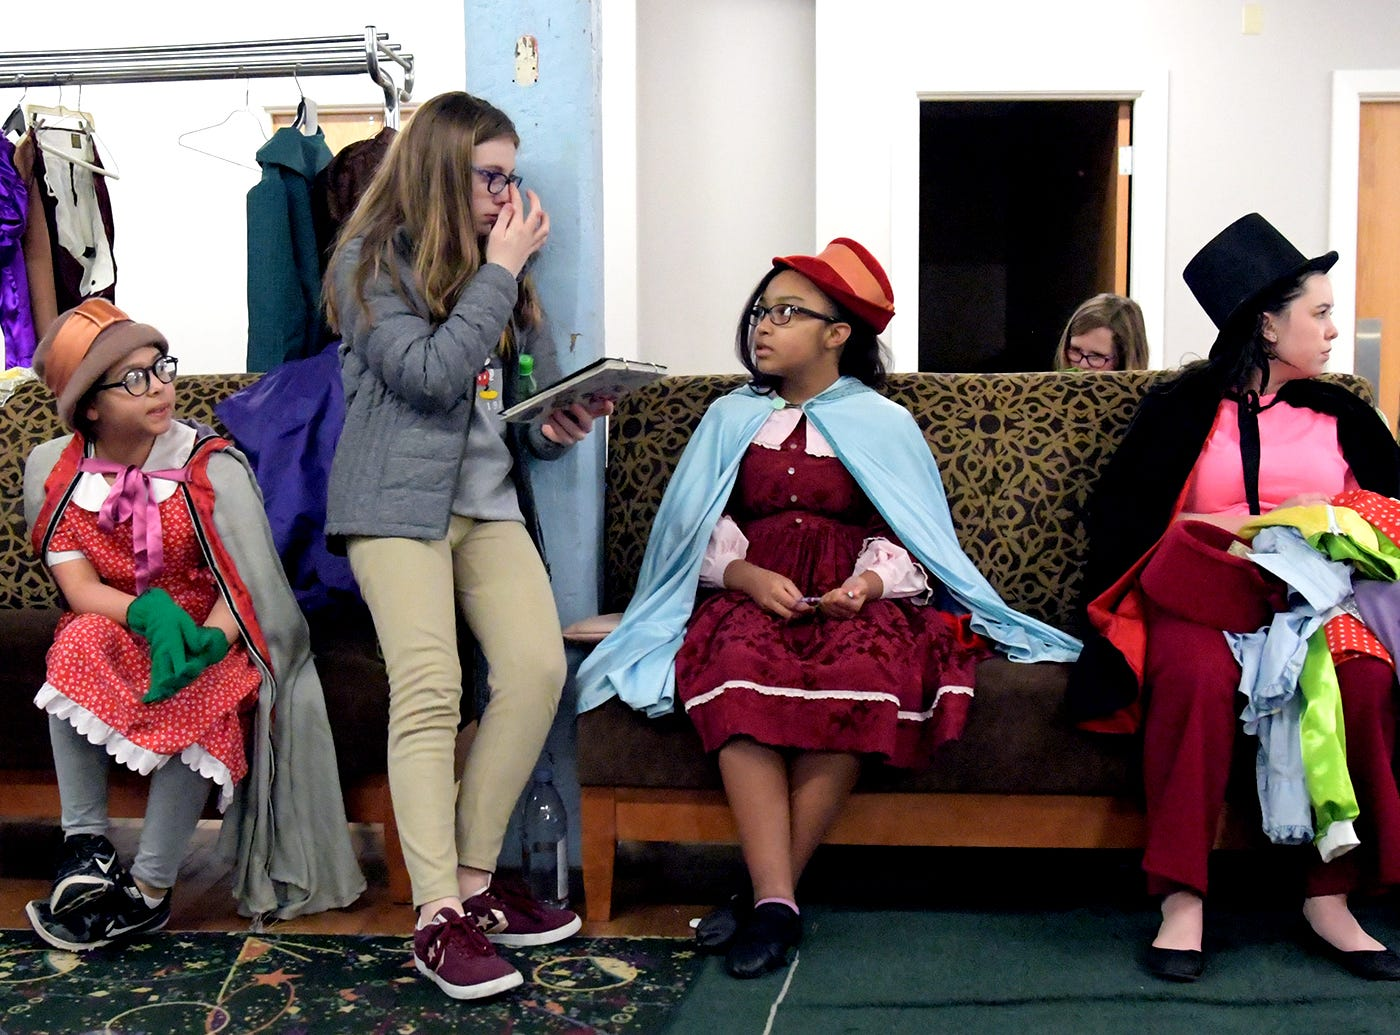 "Cast members chat before a dress rehearsal for ""A Seussified Christmas Carol"" at DreamWrights Tuesday, Dec. 4, 2018. The dual-cast performance presents twelve shows from Dec. 7 through 22 with matinee and evening start times. For show times and dates, go to dreamwrights.org. Bill Kalina photo"